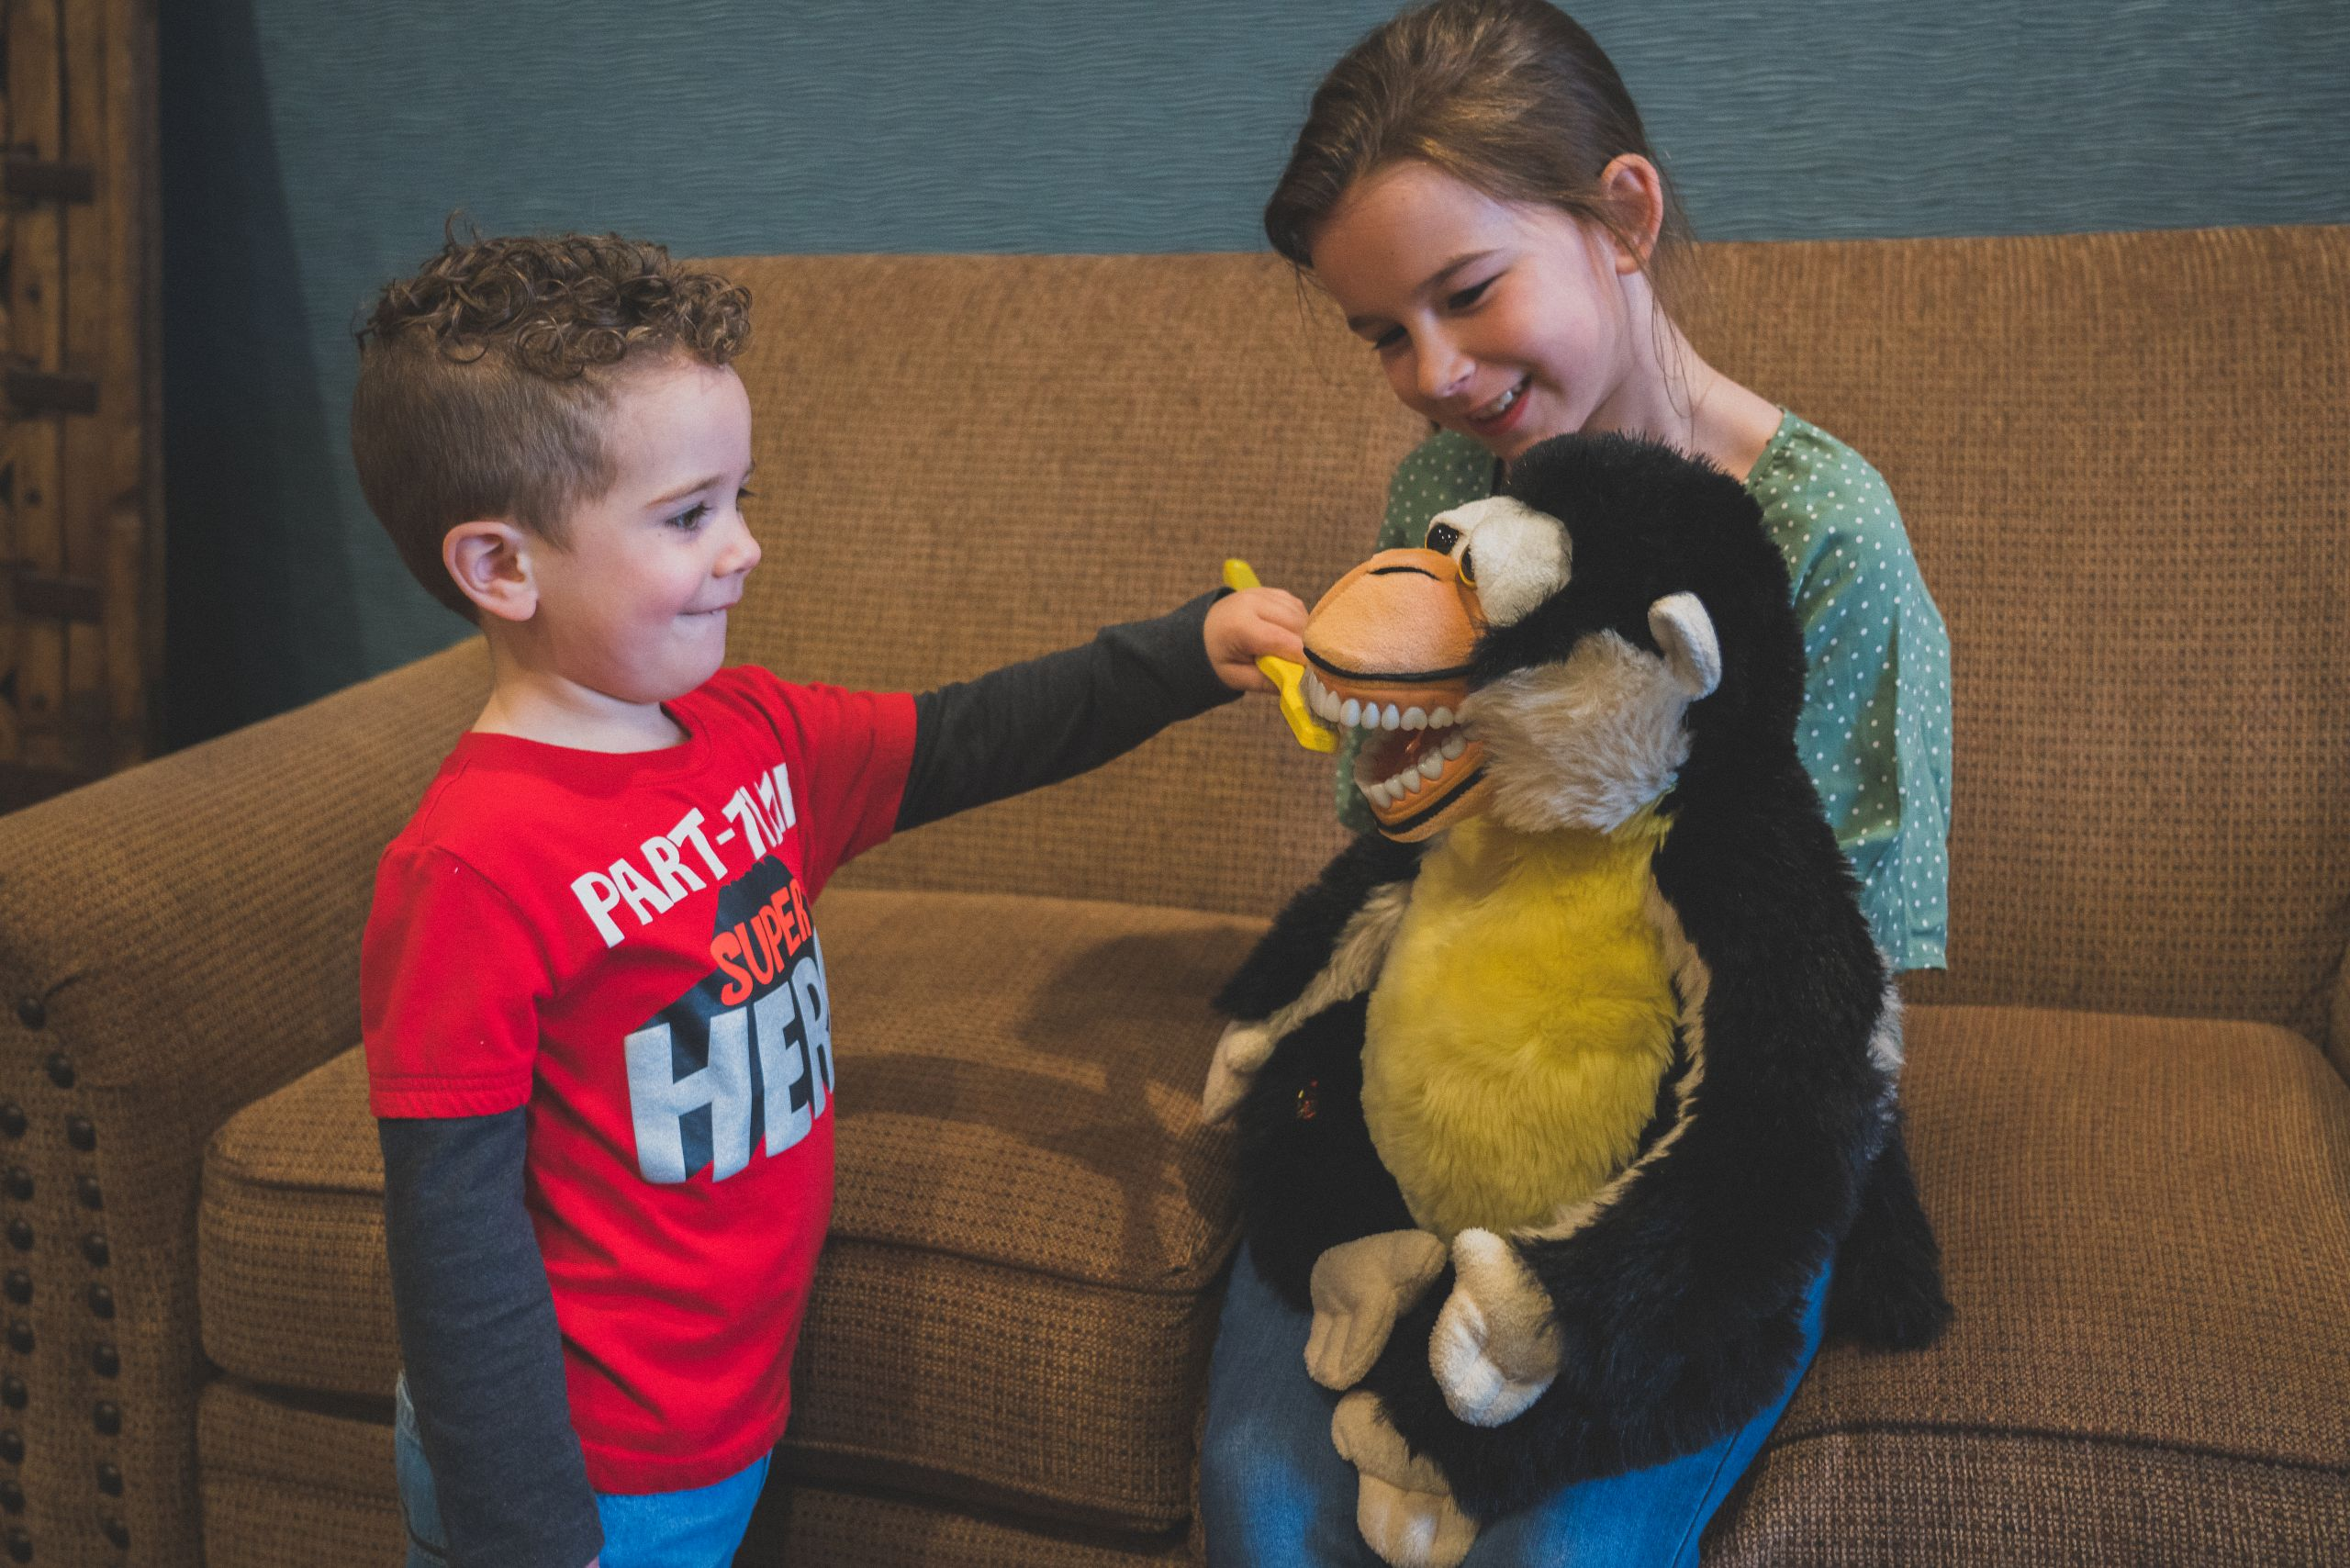 Image of a young boy brushing the teeth of a stuffed animal for the family dentistry page.